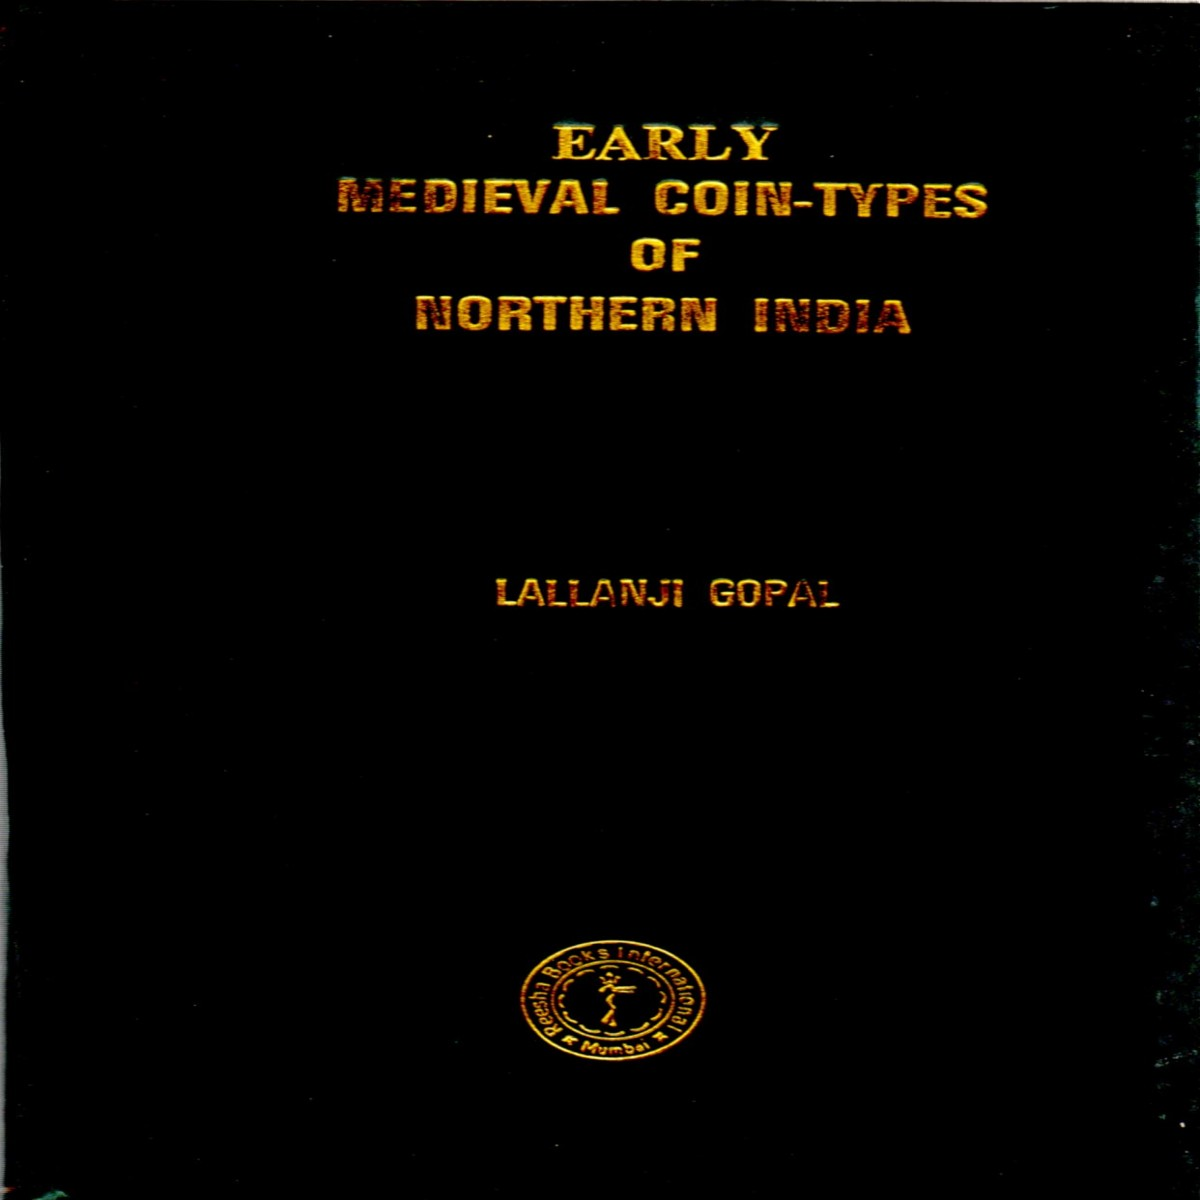 EARLY MEDIEVAL COIN-TYPES OF NORTHERN INDIA (Leather bound)